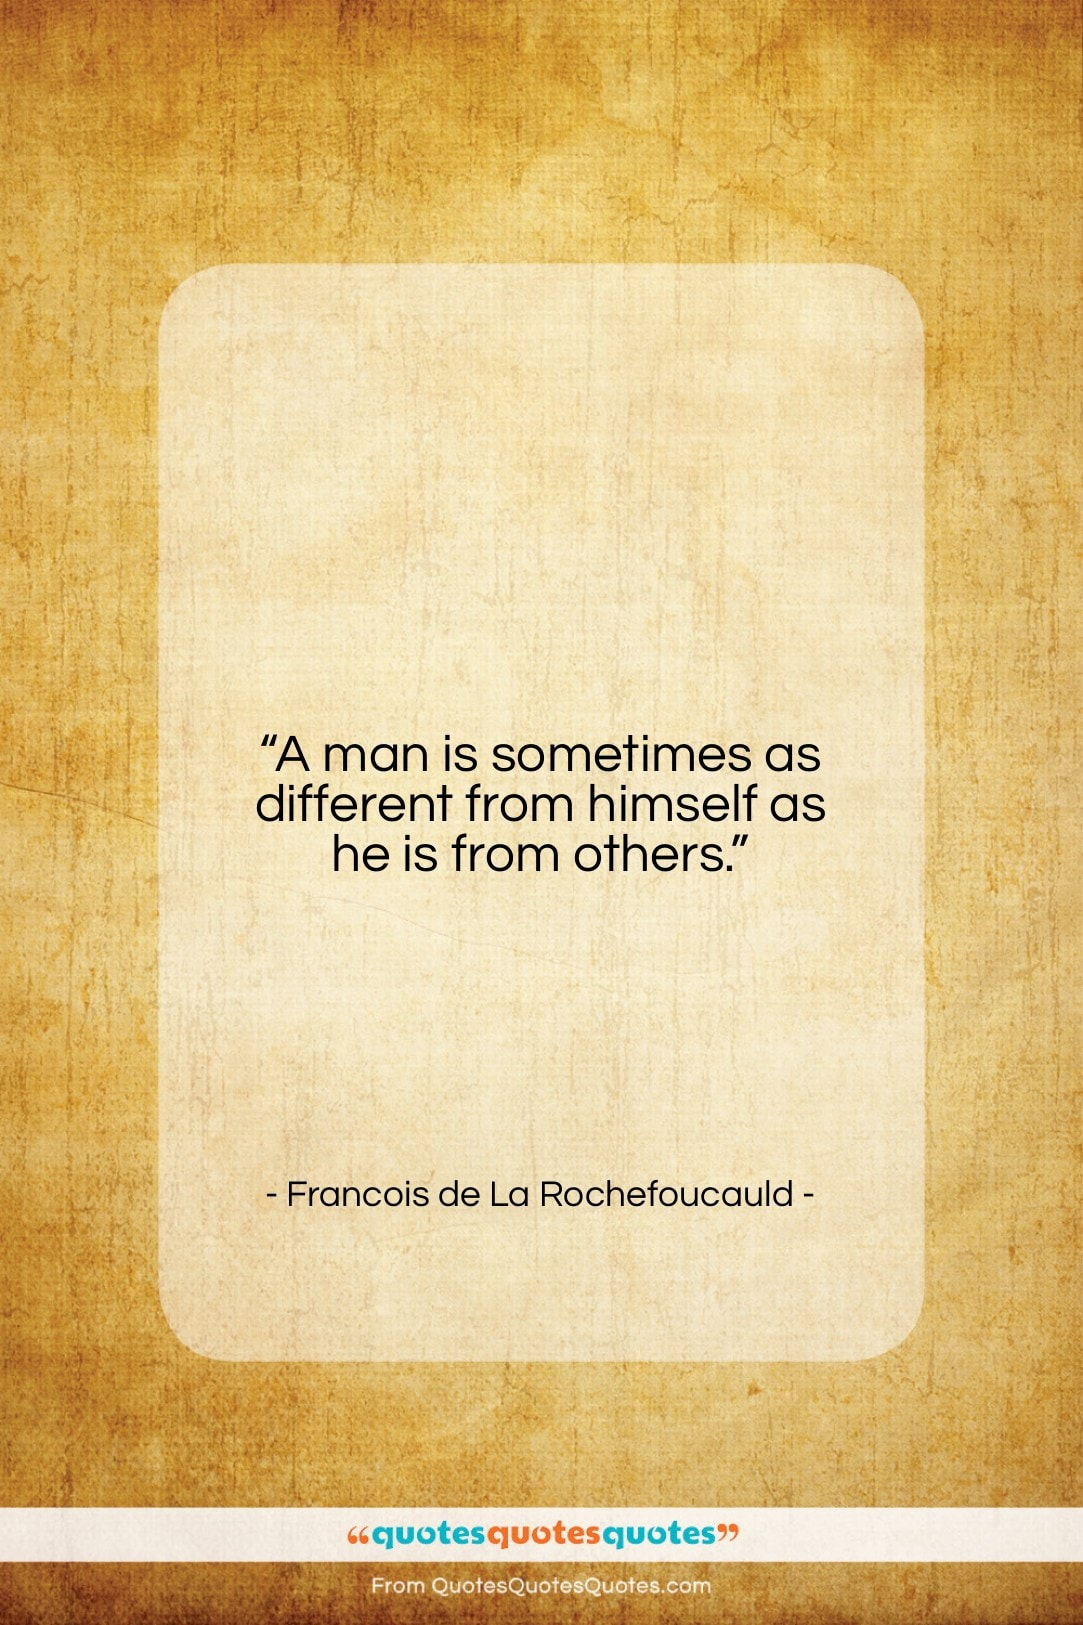 """Francois de La Rochefoucauld quote: """"A man is sometimes as different from…""""- at QuotesQuotesQuotes.com"""